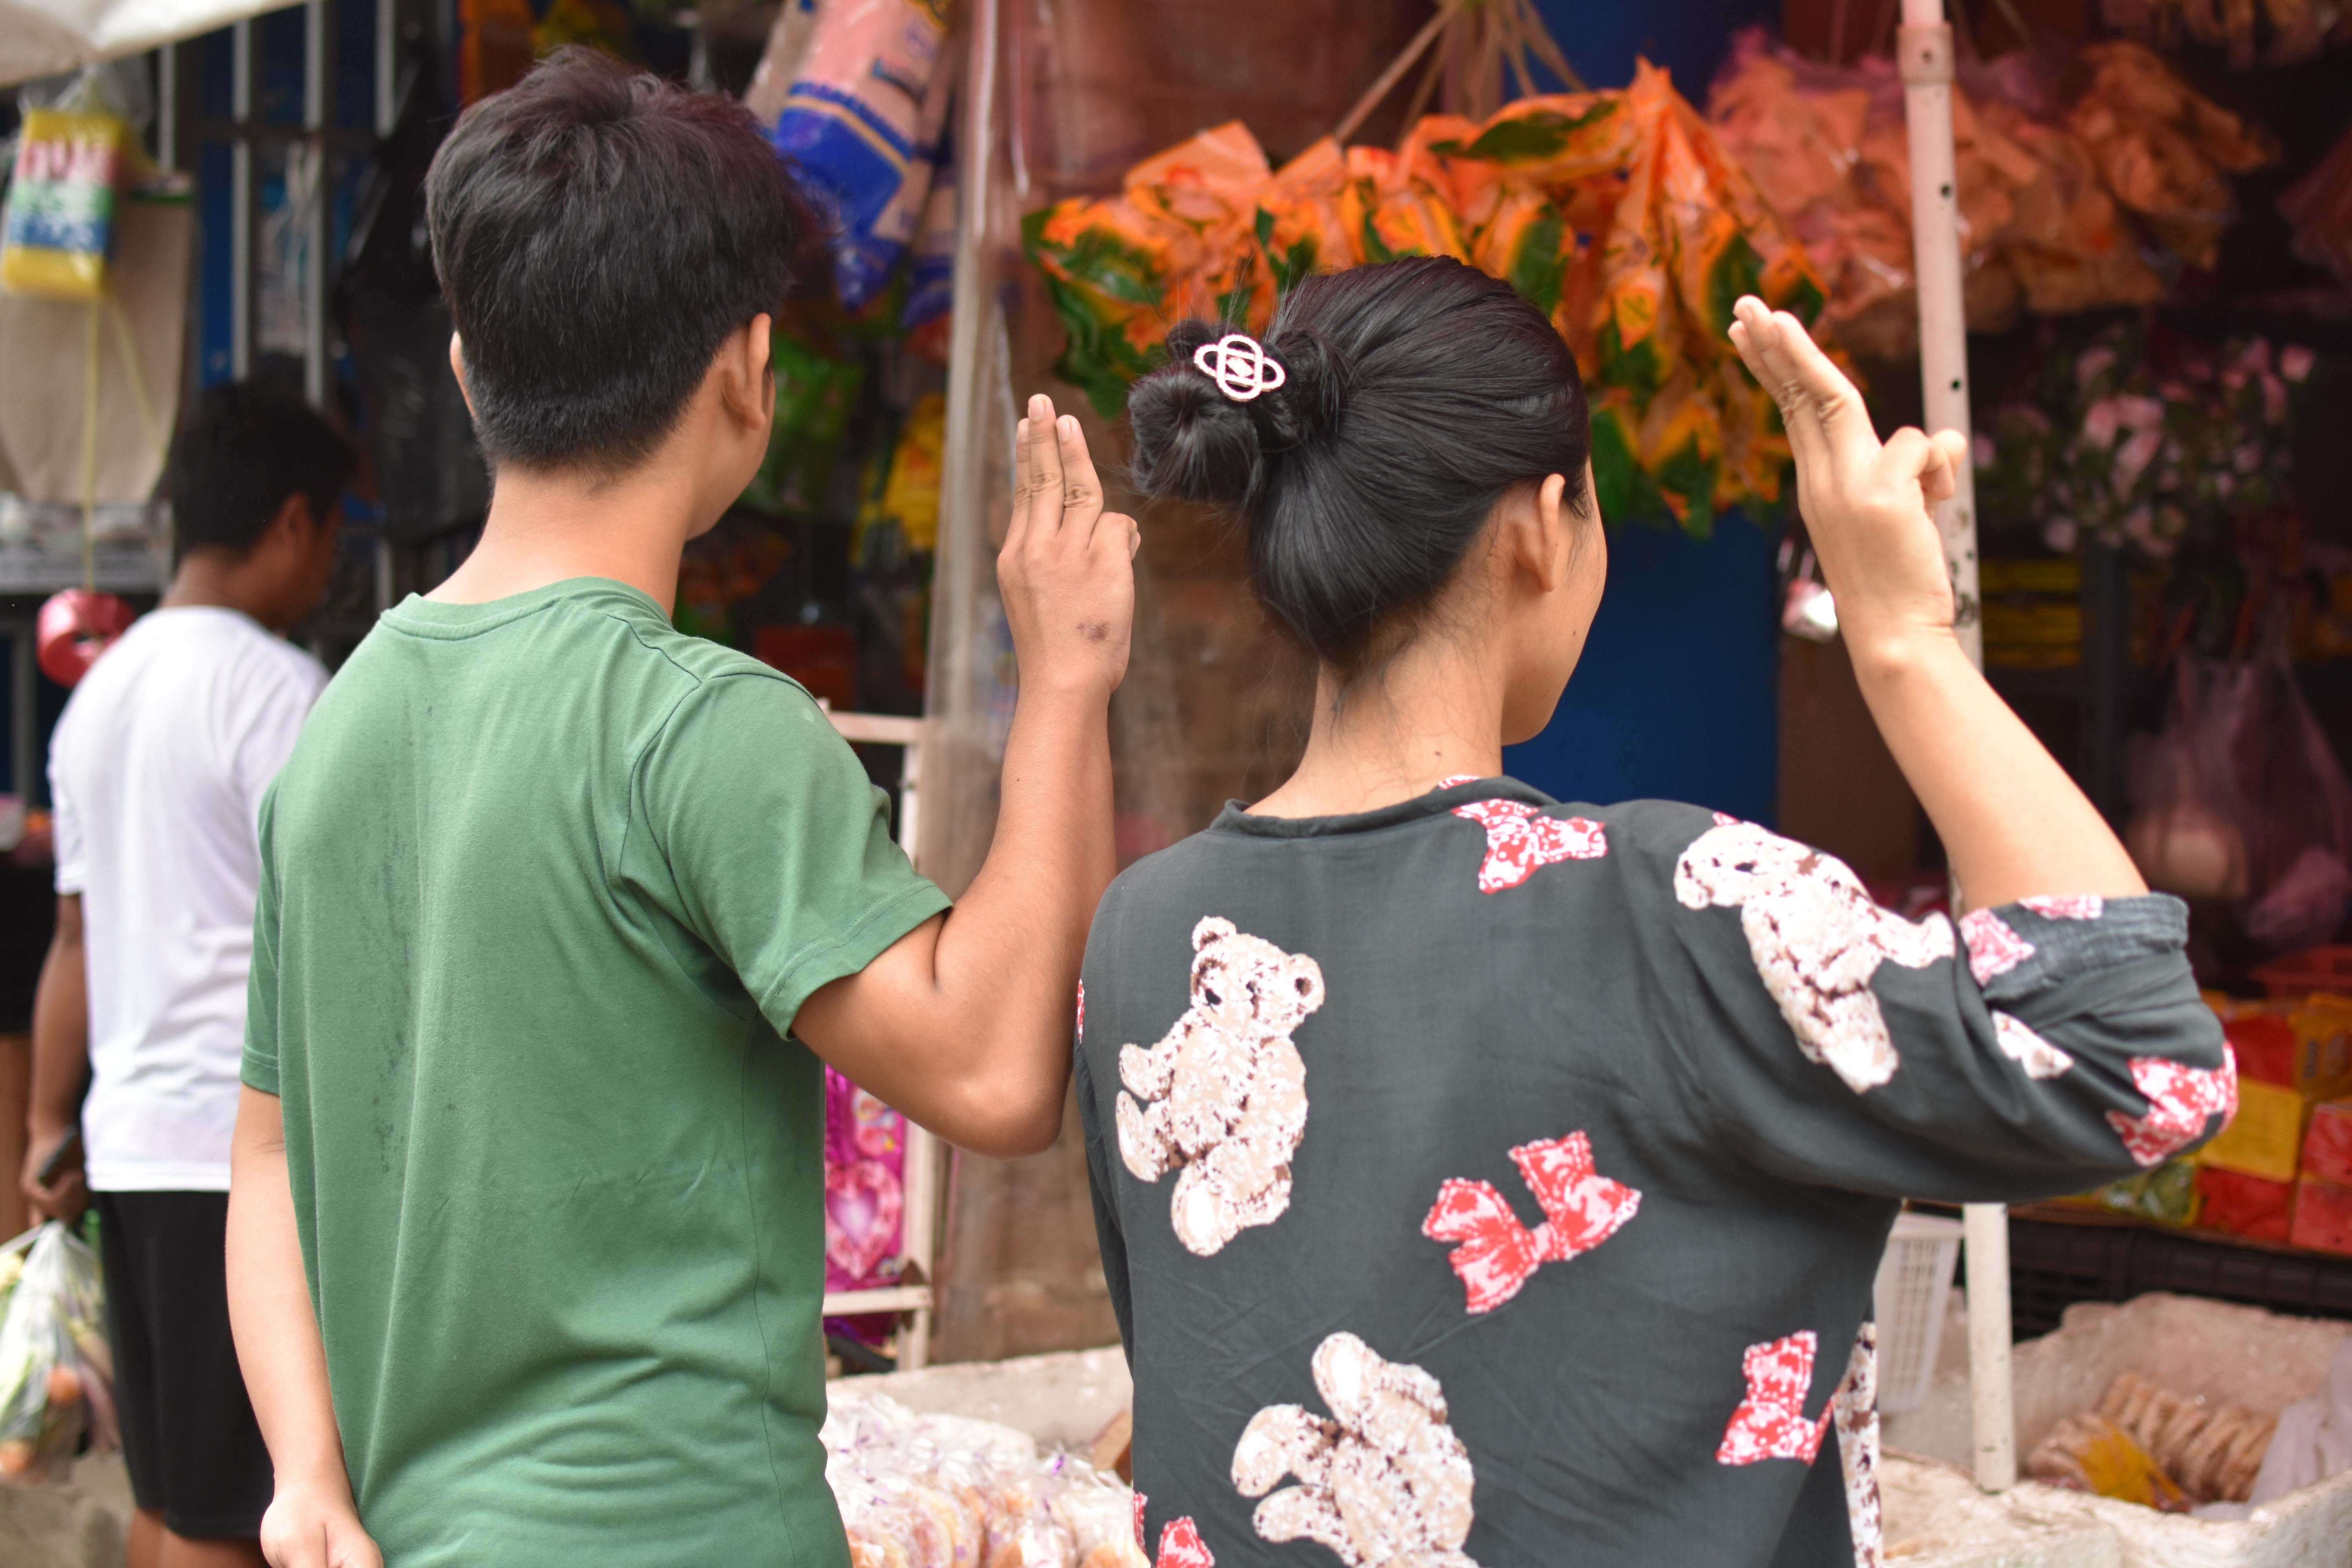 A man and woman hold up three fingers with their right hands in a market.